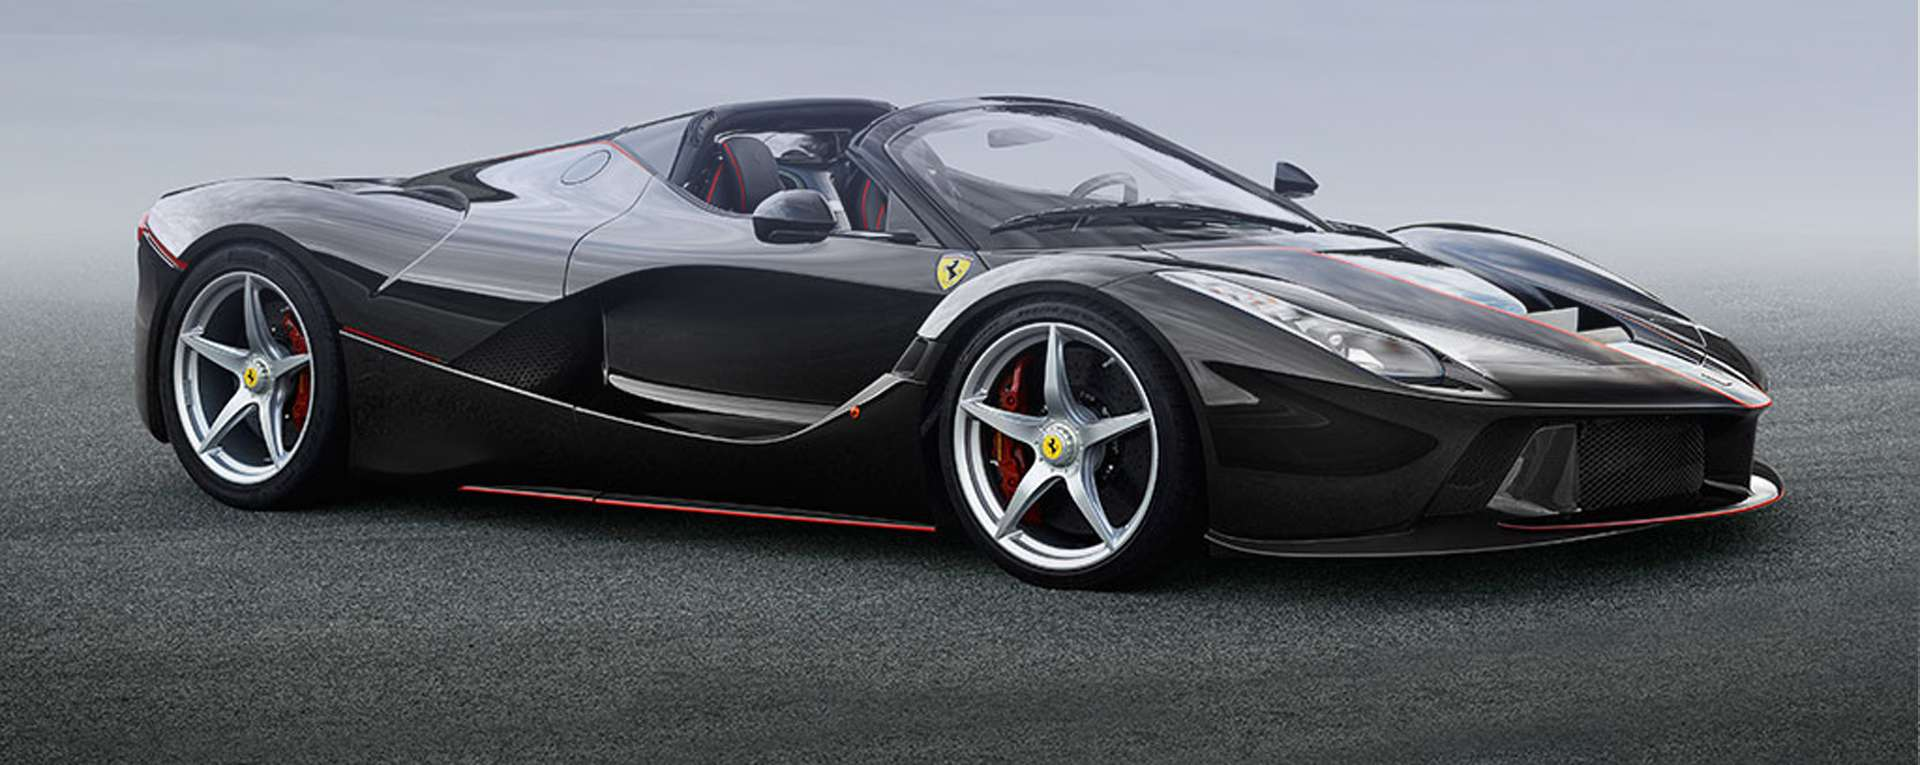 LAFERRARI APERTA Main Slide